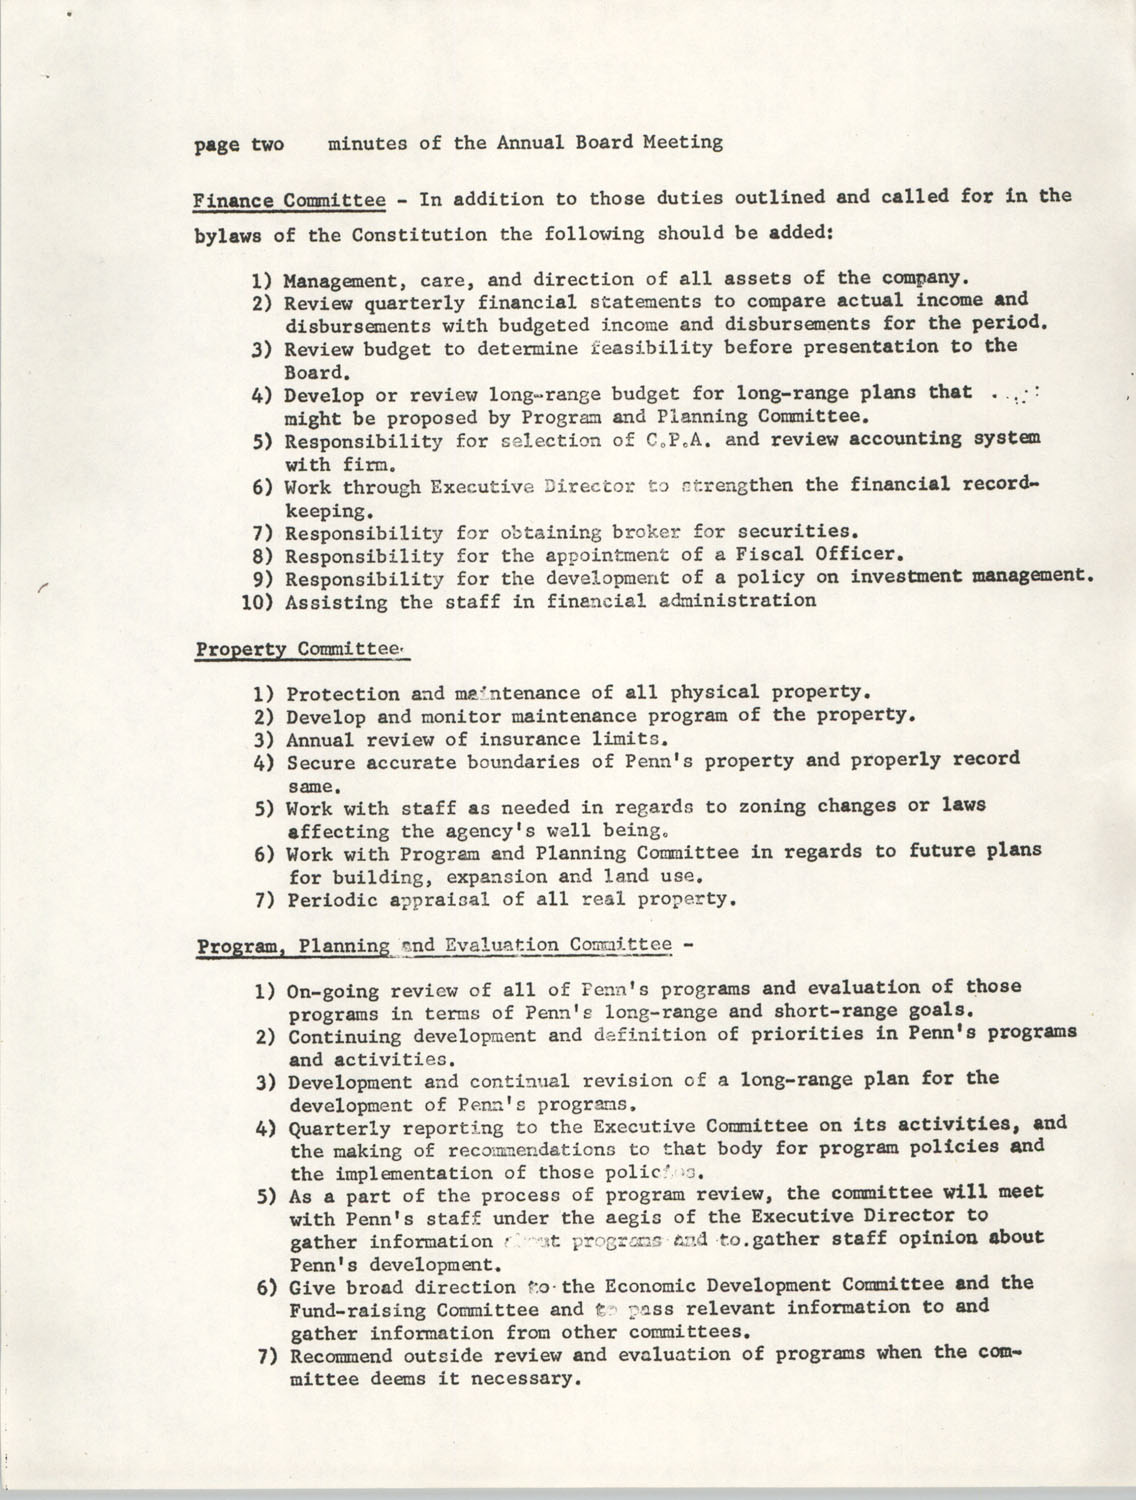 Minutes, Penn Community Services, September 20-21, 1974, Page 2